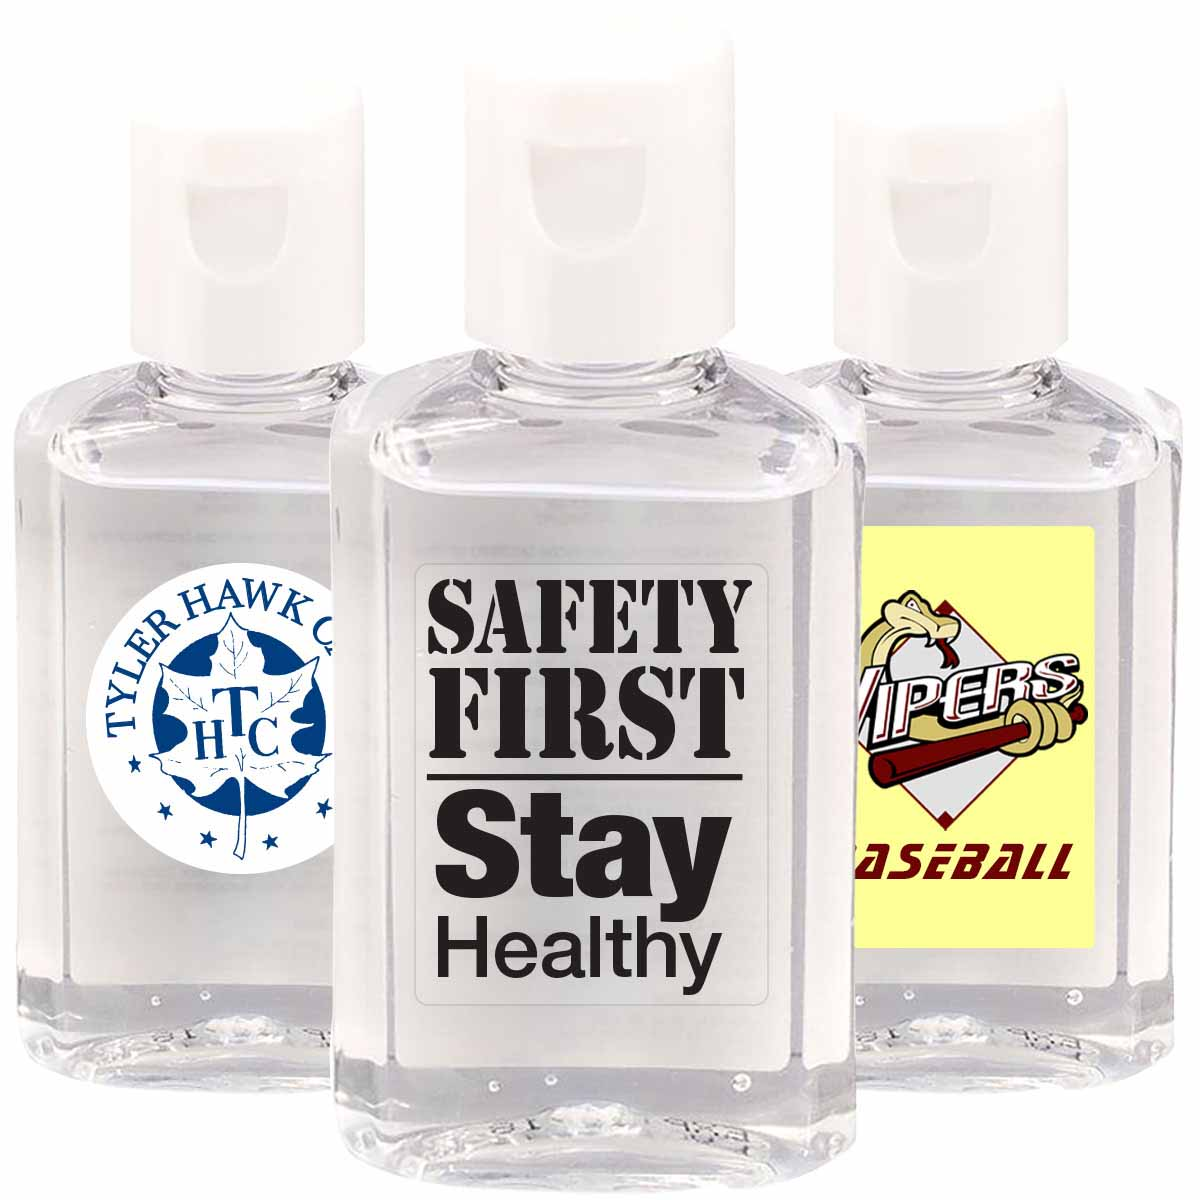 2 oz. Hand Sanitizer Gel